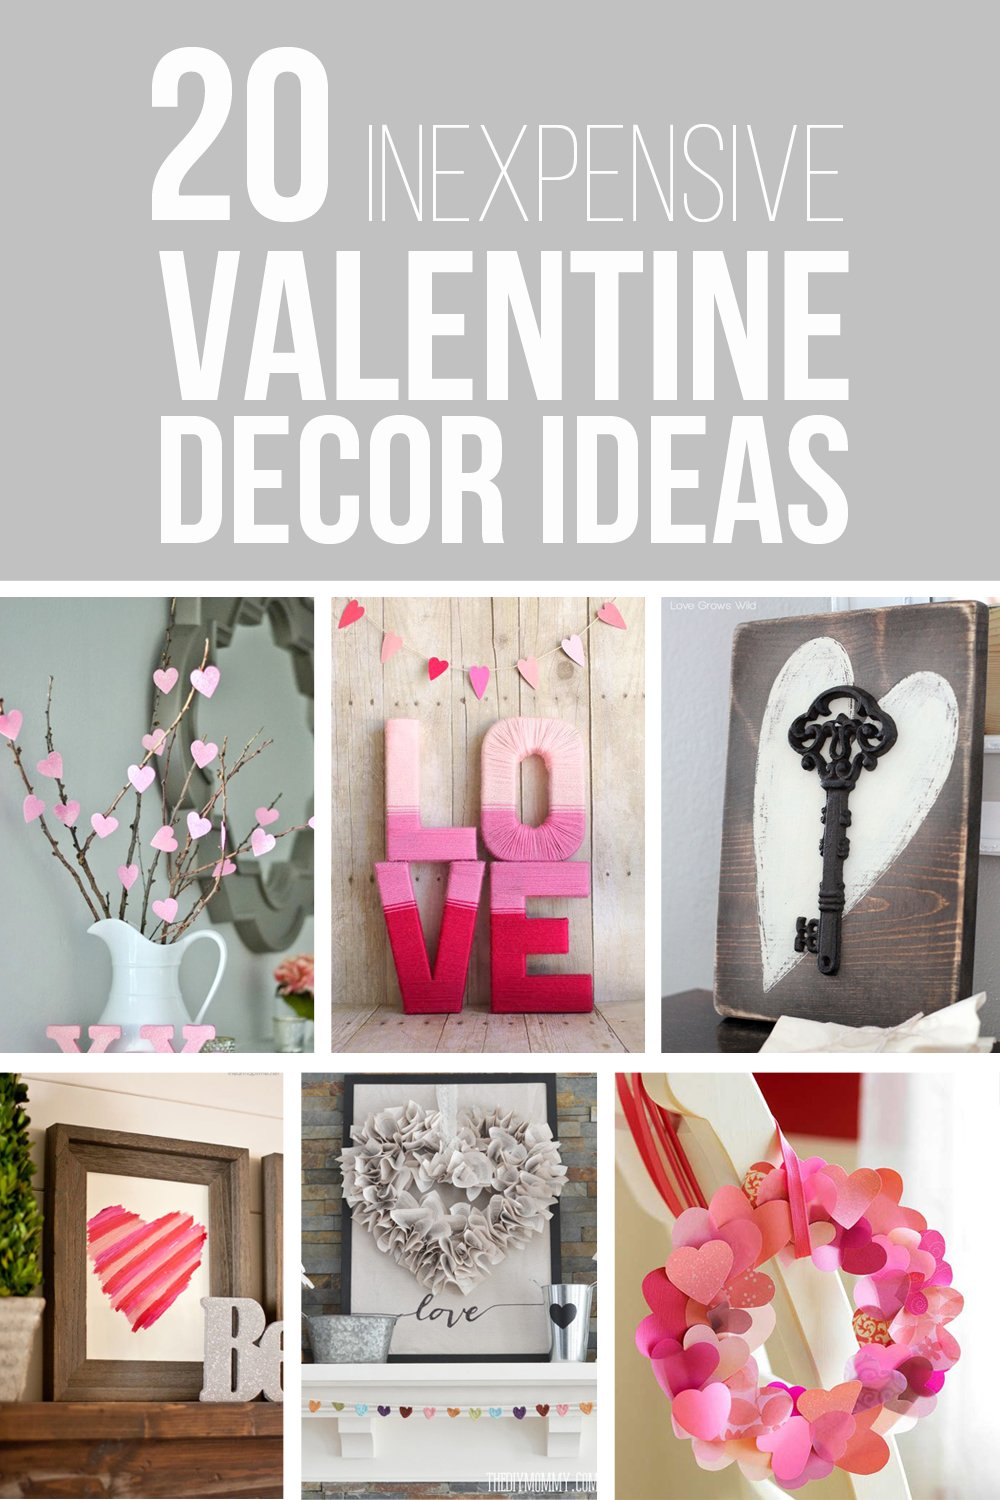 20 inexpensive valentine decor ideas via make it and love it